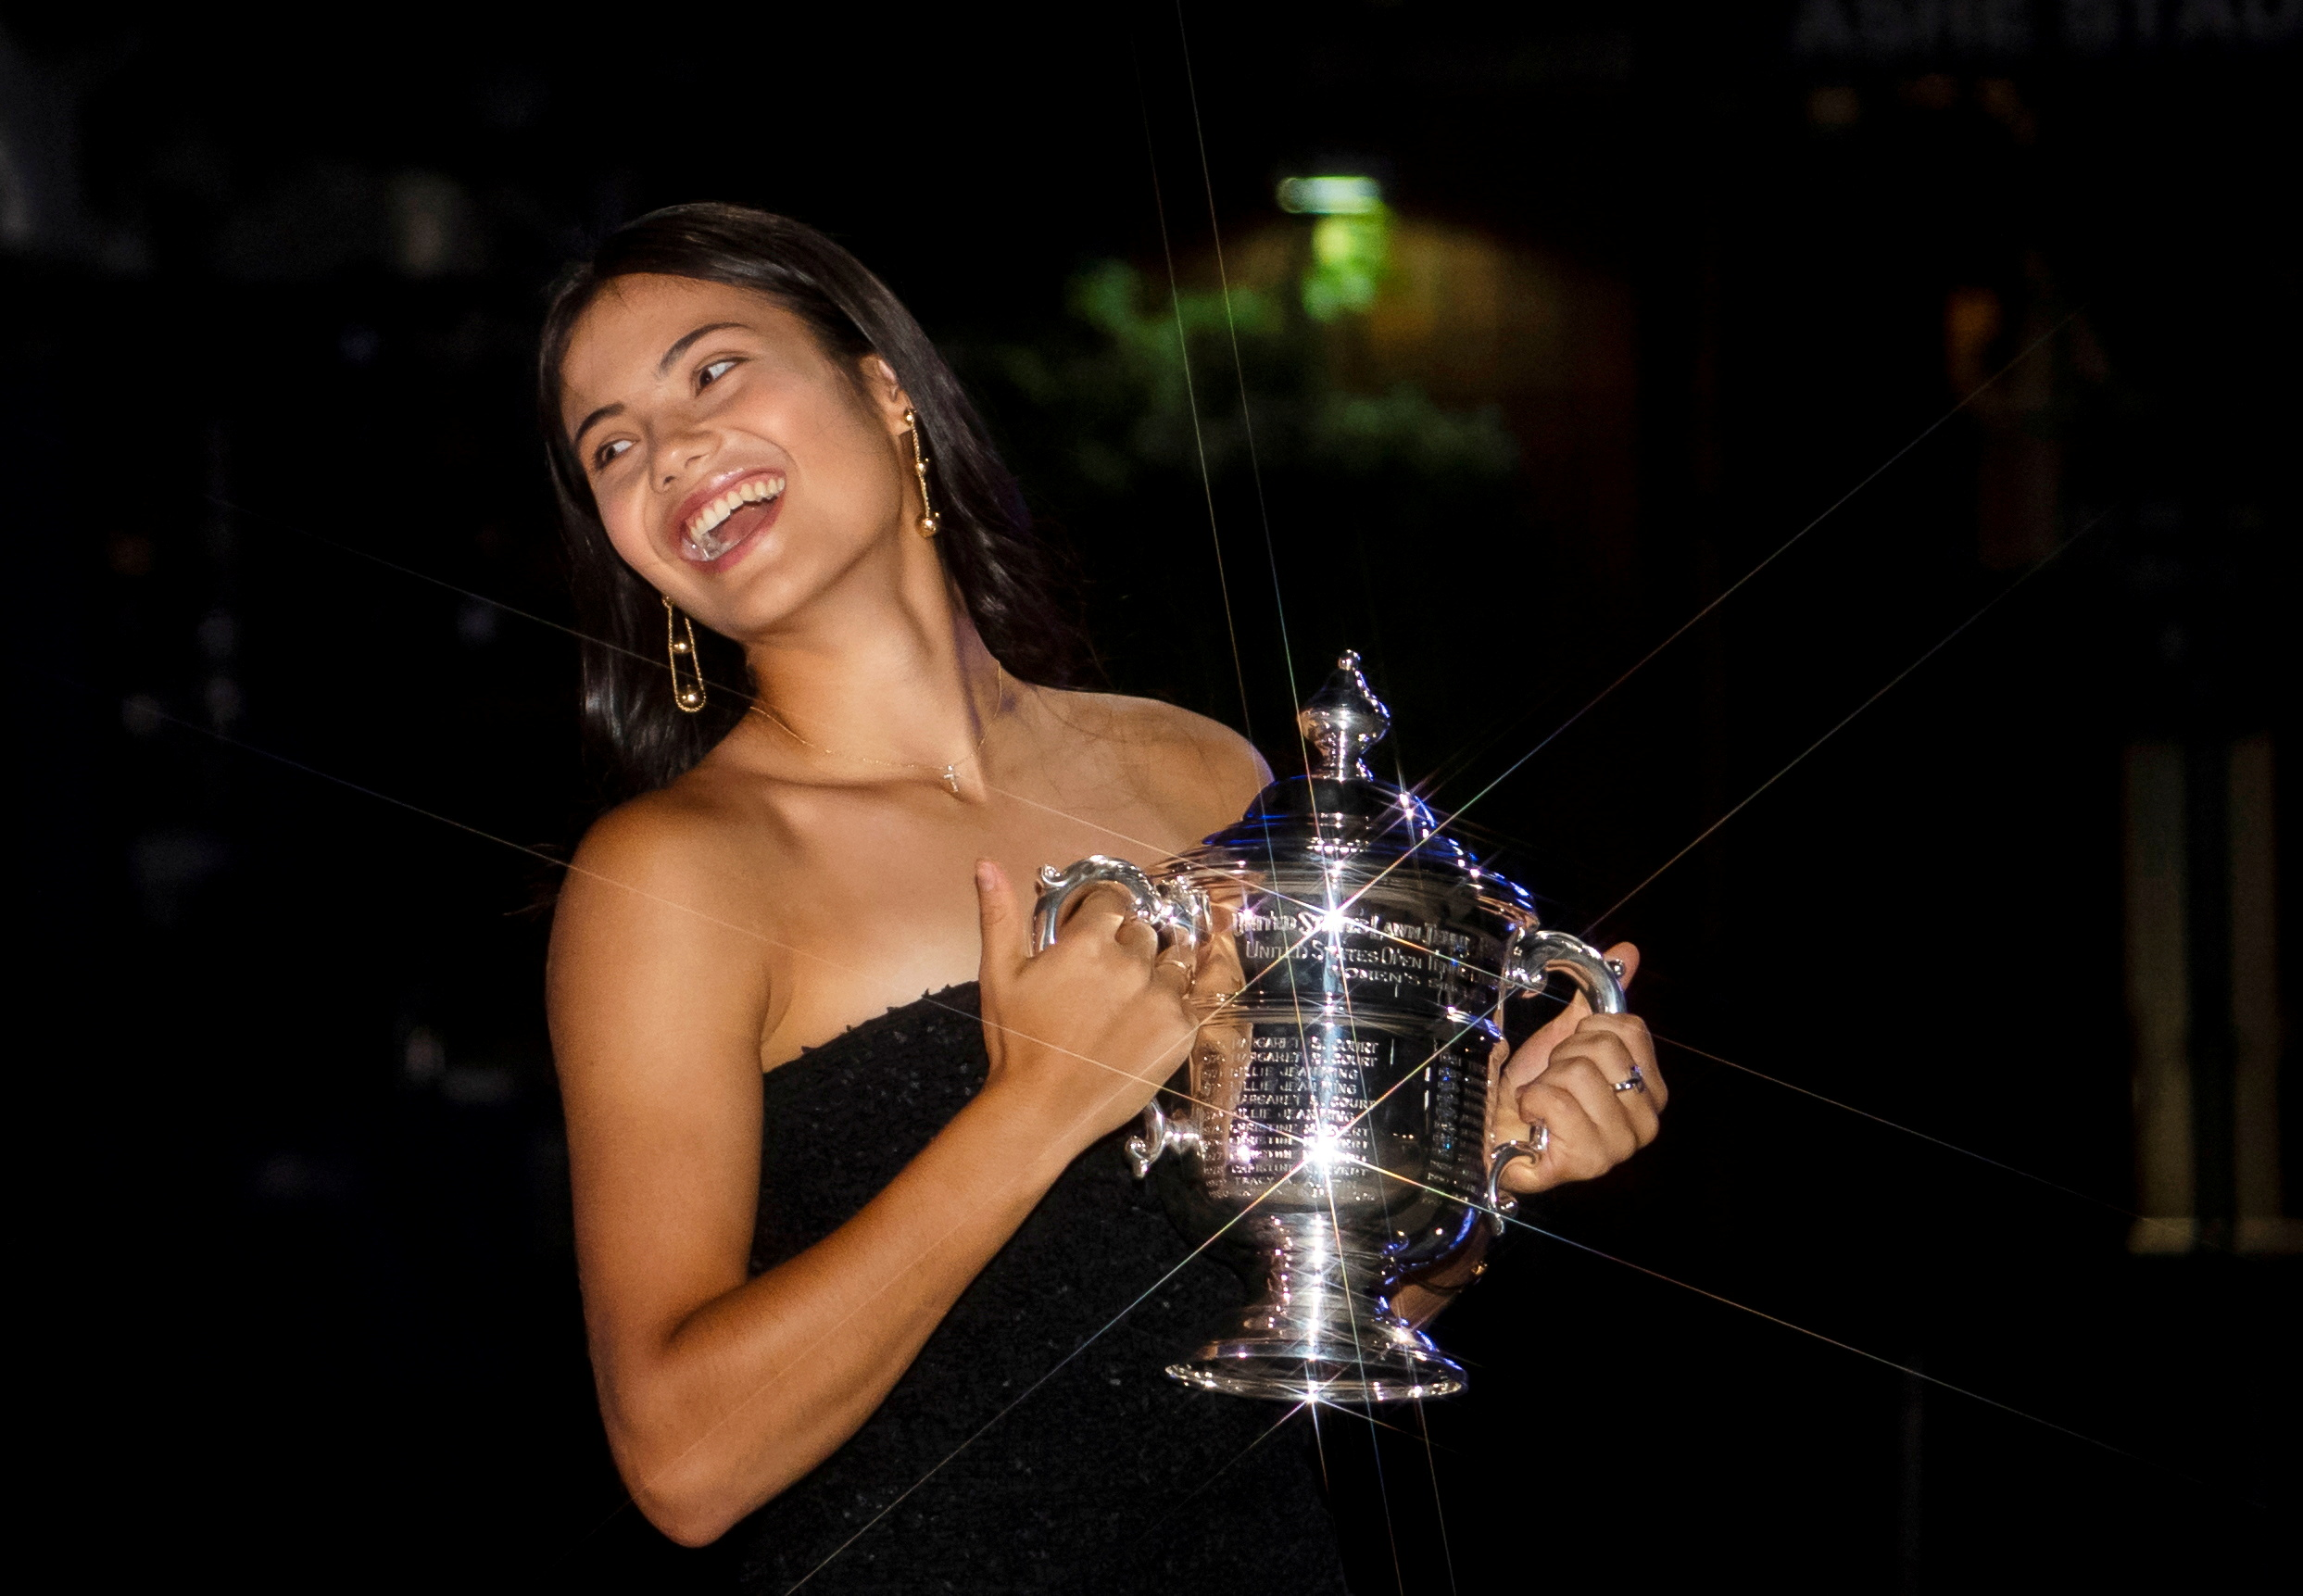 Britain's Emma Raducanu poses with the U.S. Open tennis championship trophy after her match against Leylah Fernandez of Canada in the women's singles final the 2021 U.S. Open tennis tournament at USTA Billie Jean King National Tennis Center in New York, U.S., September 11, 2021. Picture taken September 11, 2021.   Michael Frey/Handout via REUTERS